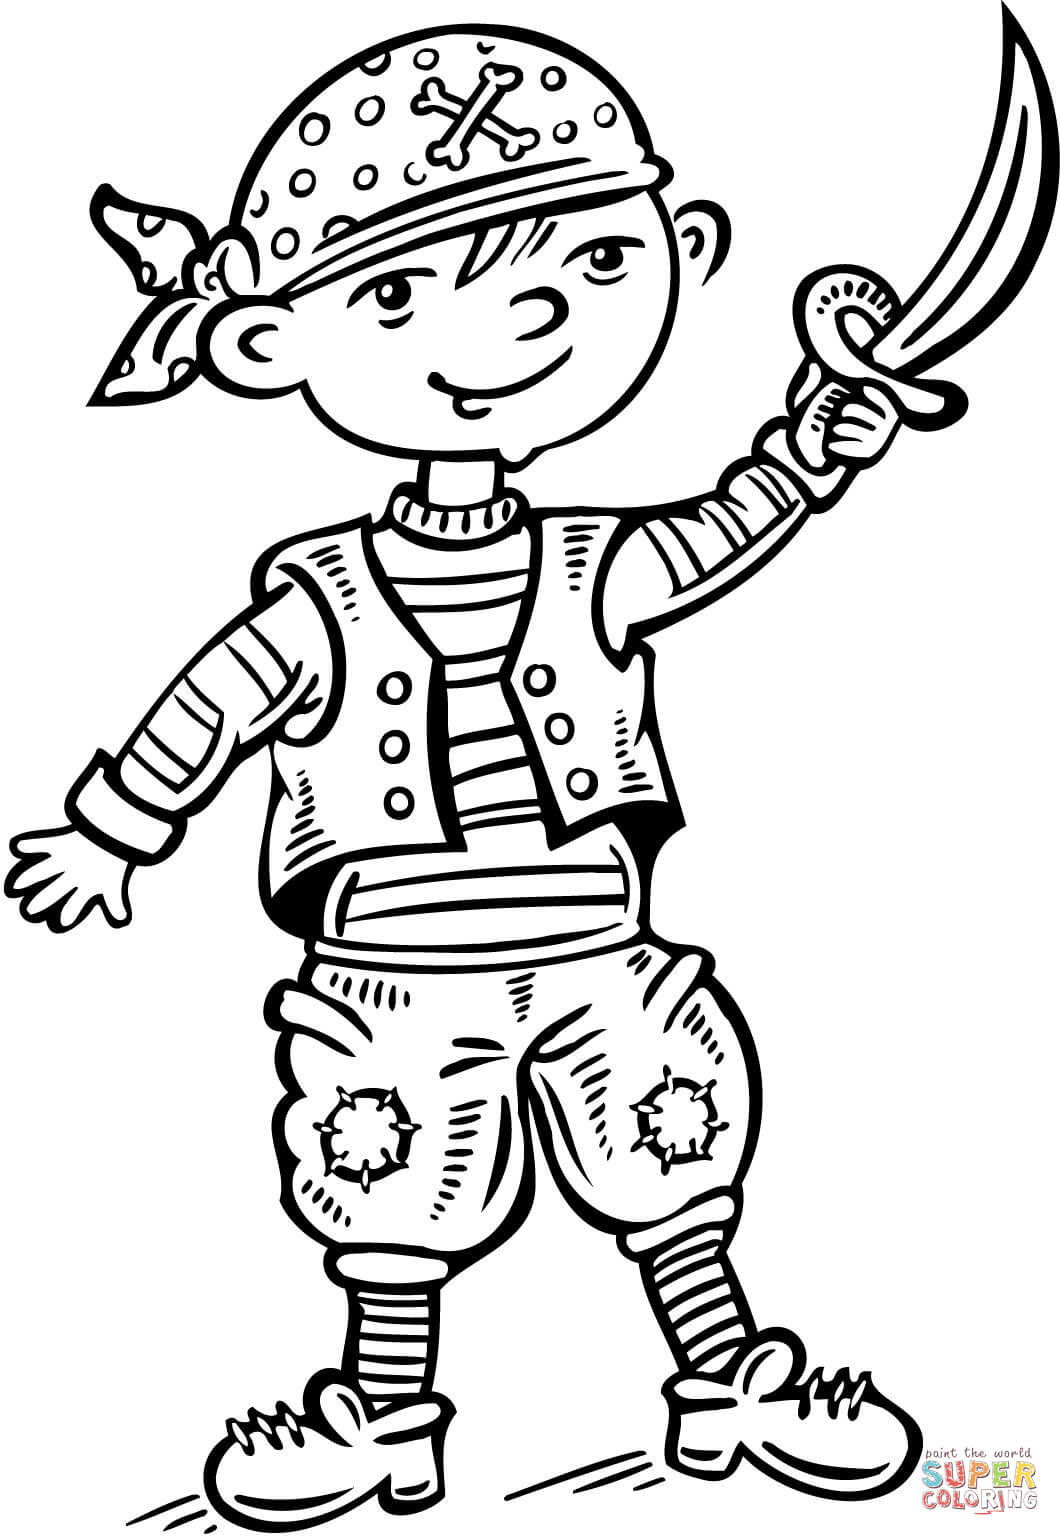 pirate images to colour free printable pirate coloring pages for kids colour images to pirate